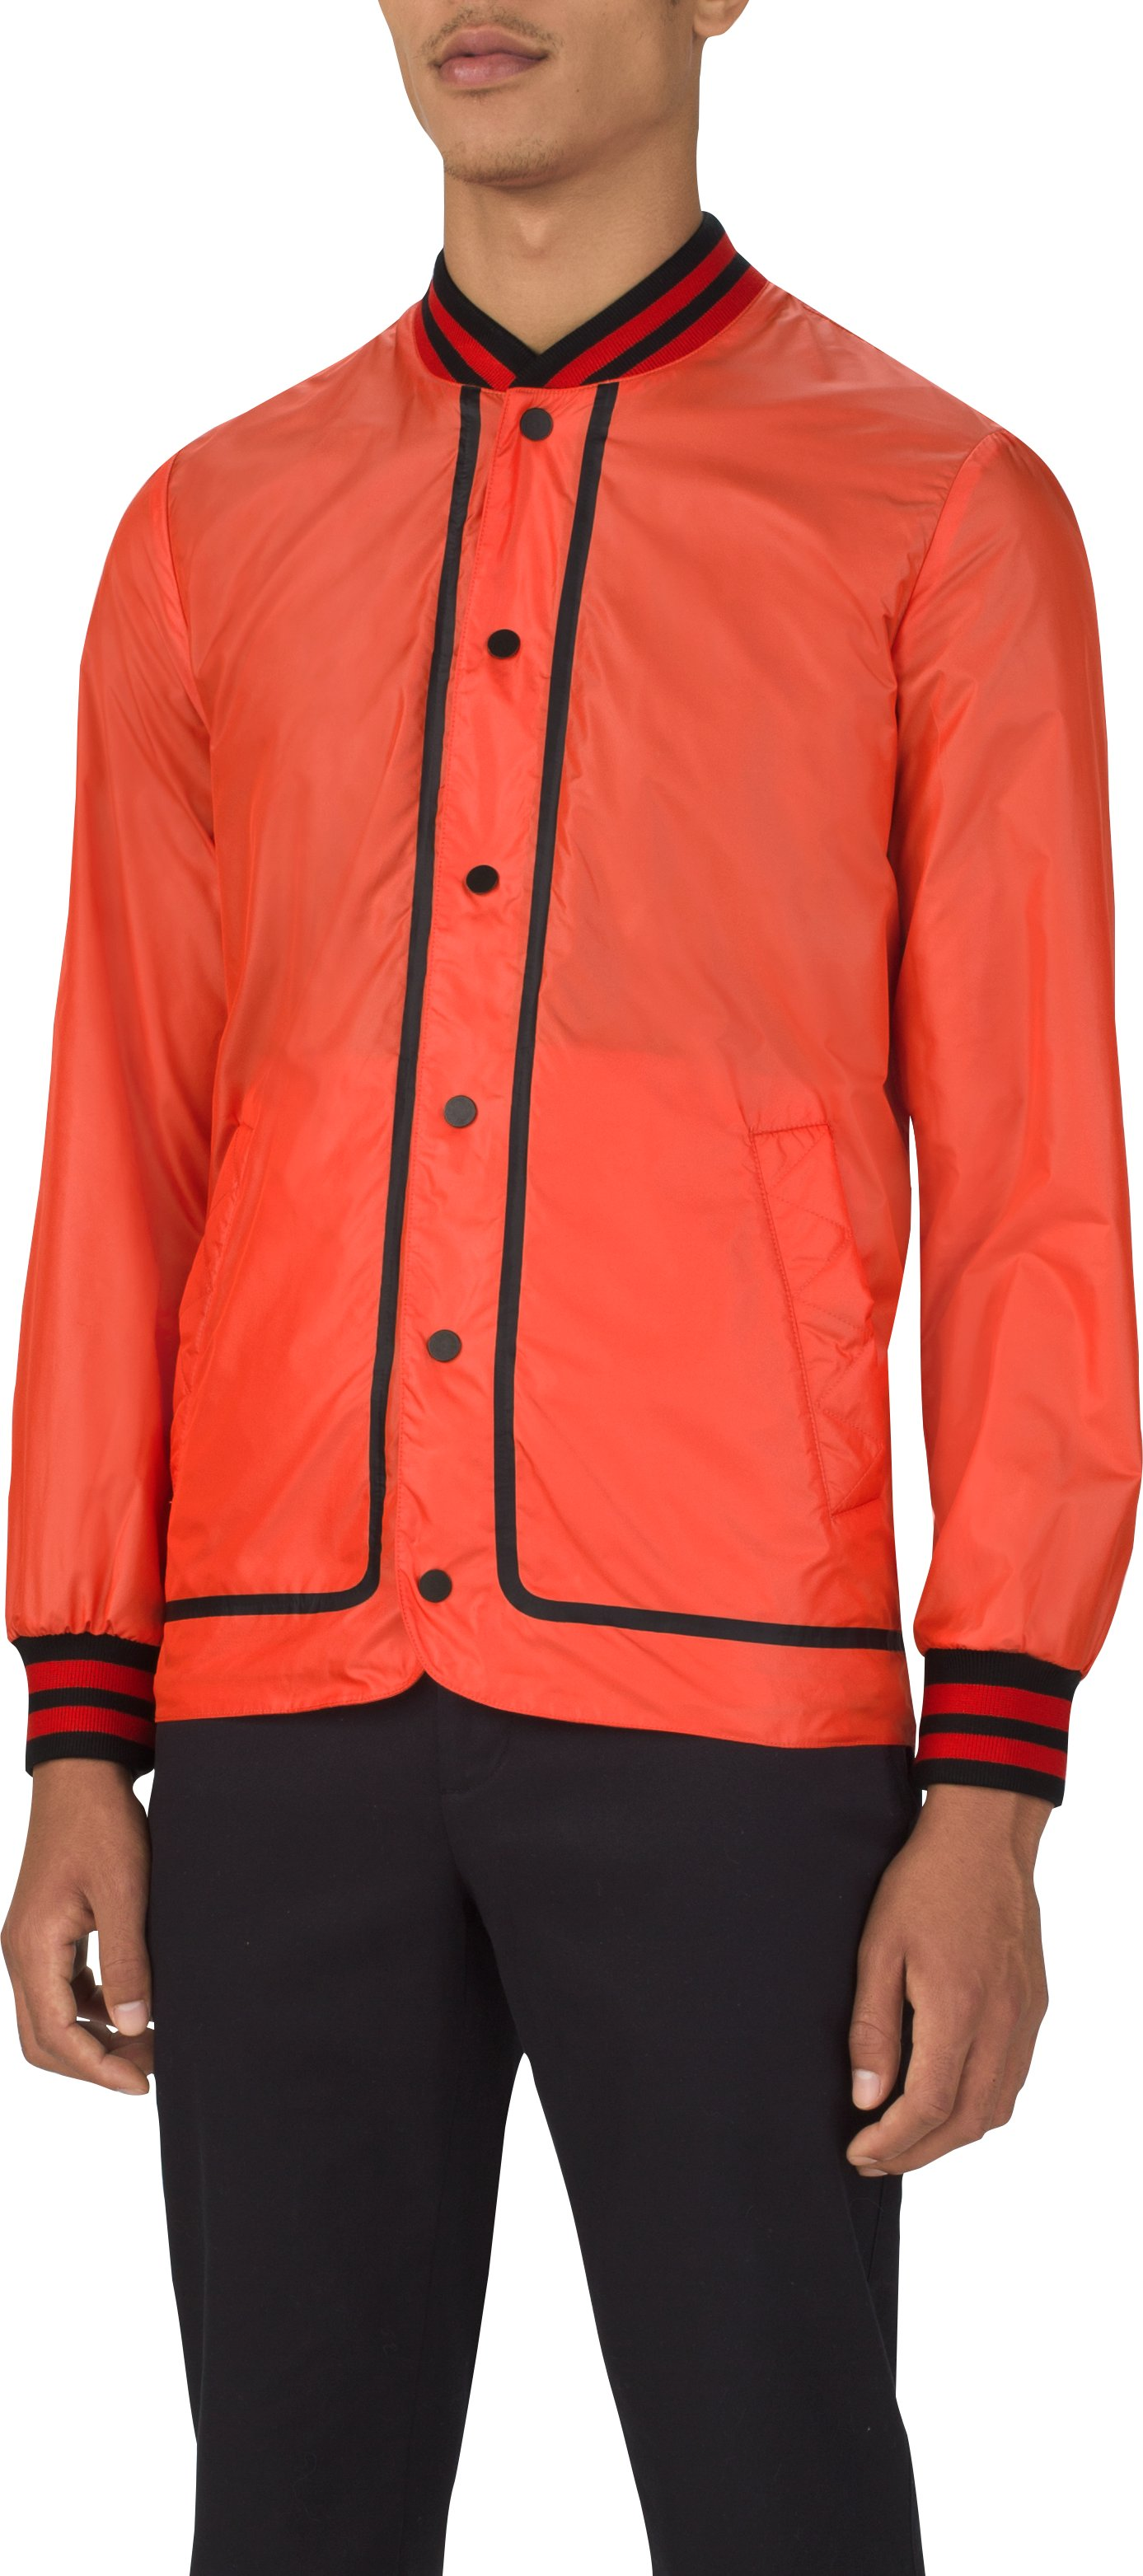 Men's UAS Coaches Jacket Water Resistant Woven Shell, Orange